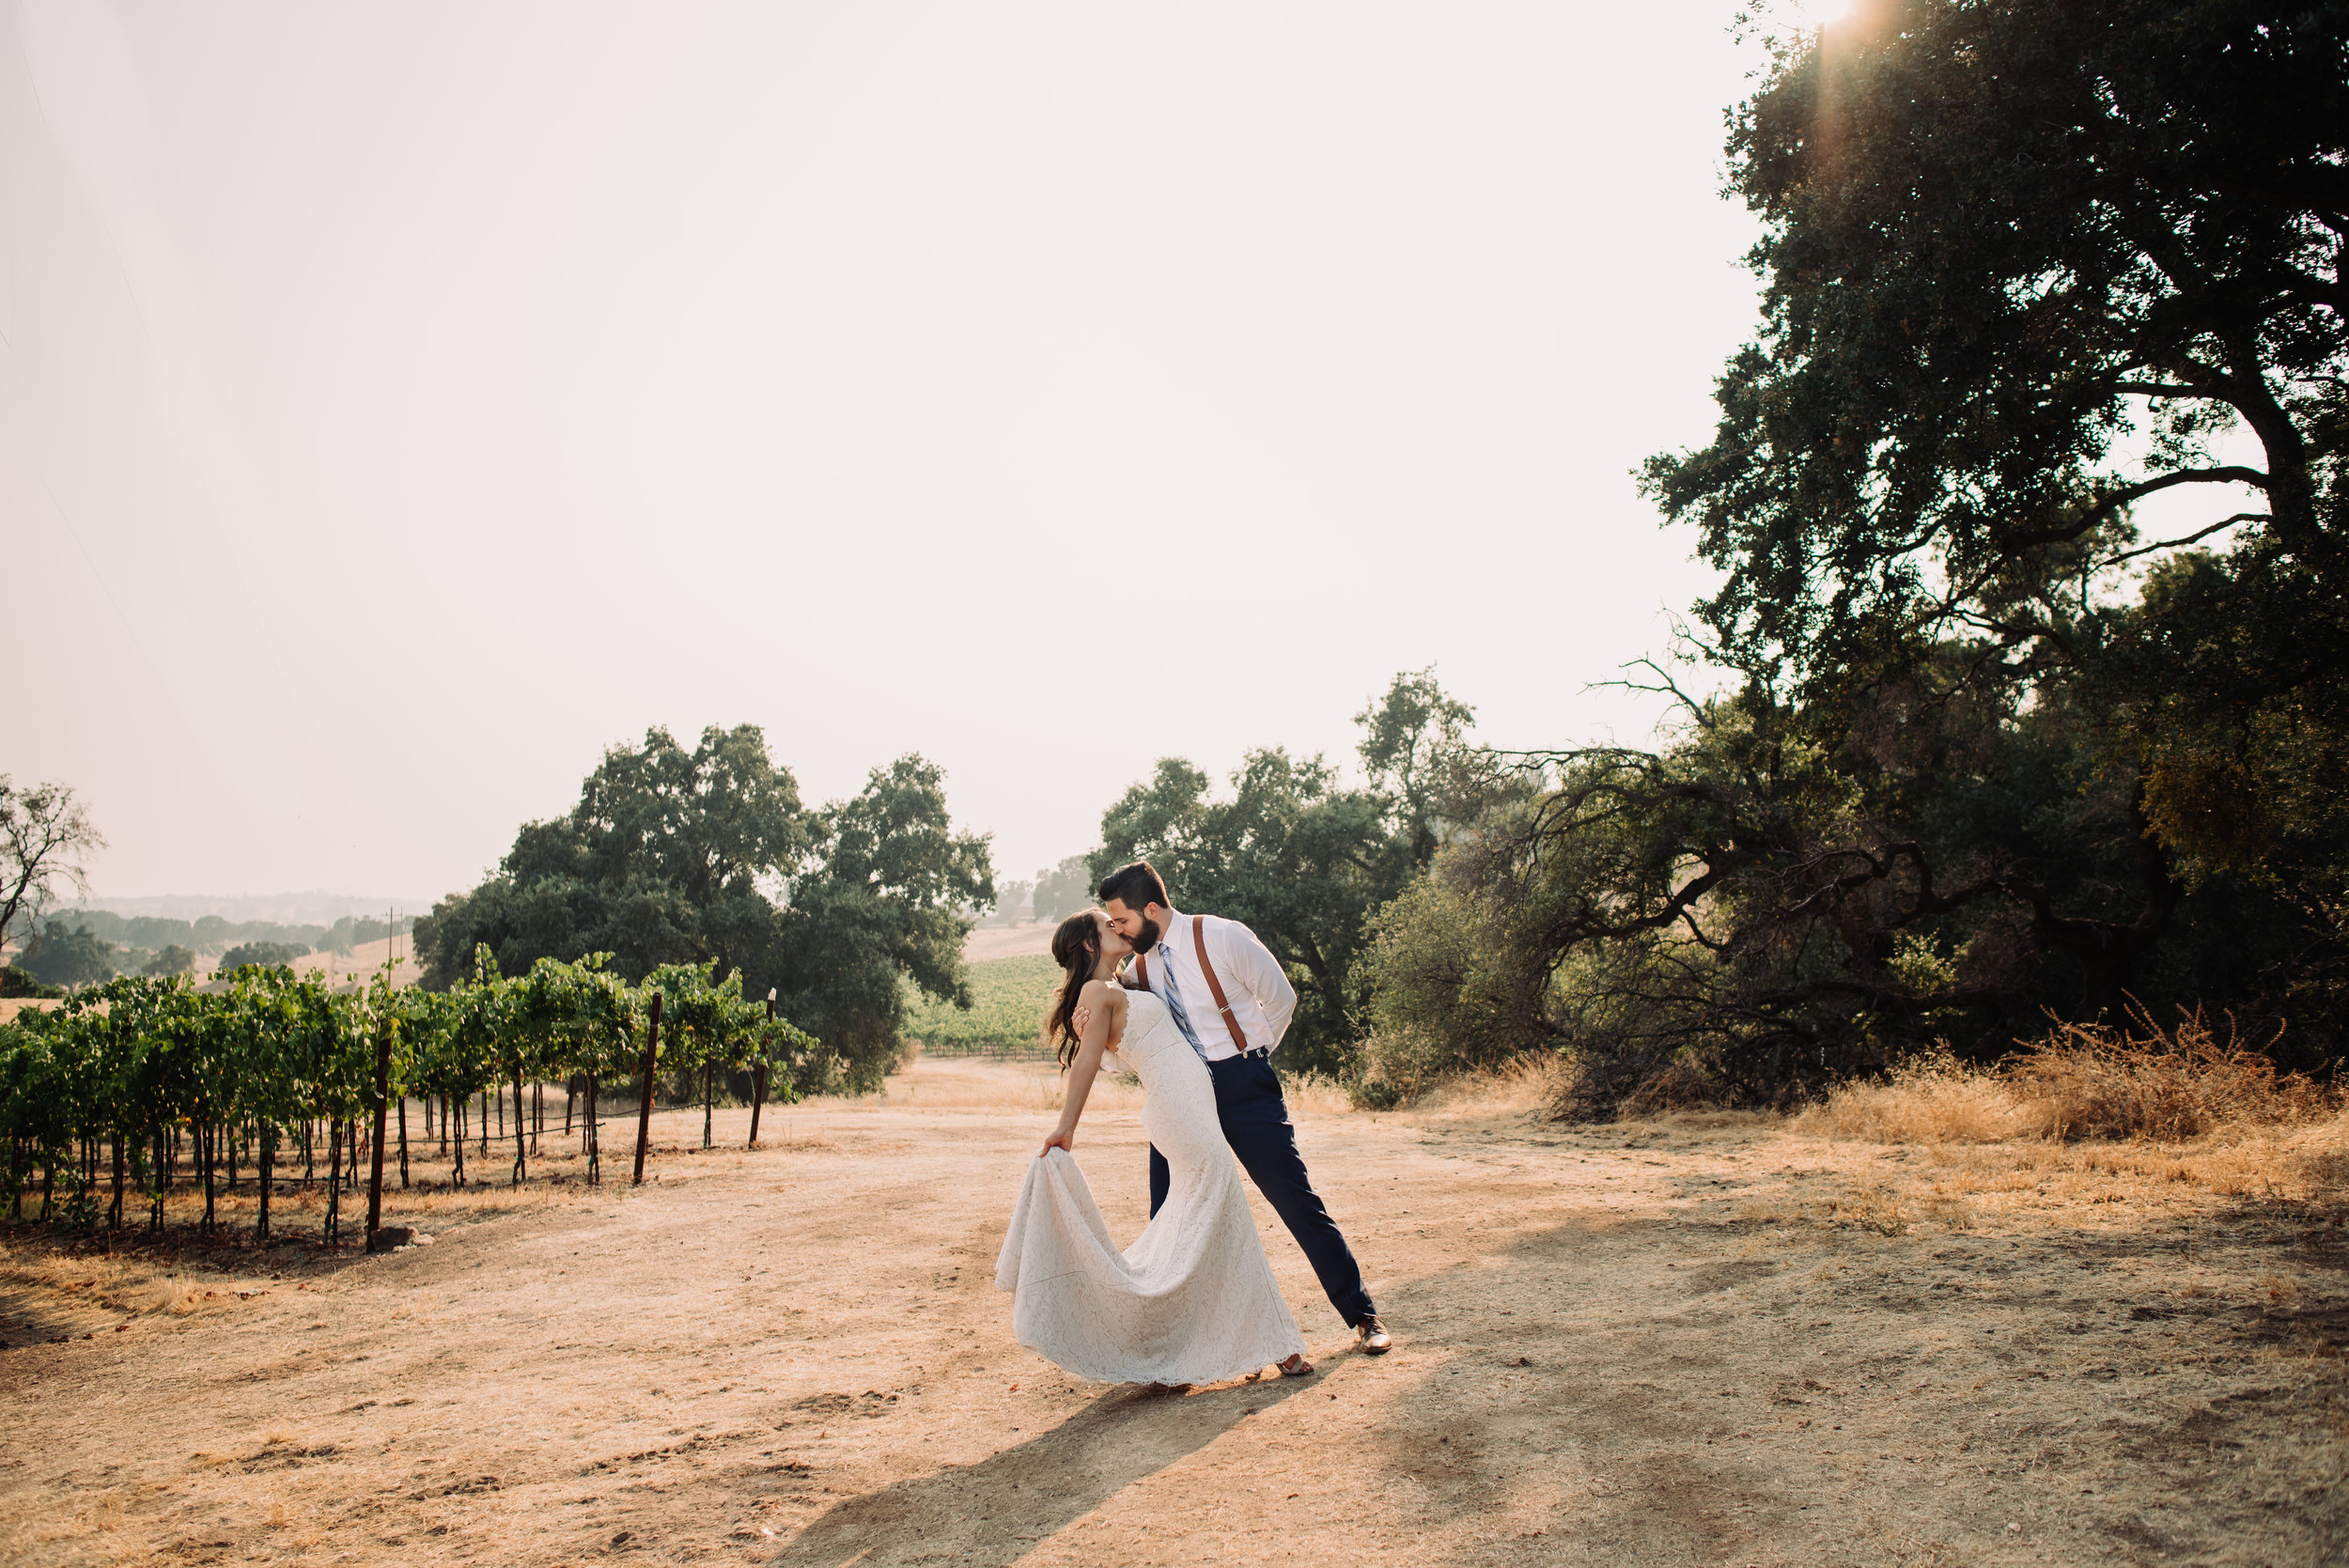 jessica_roman_photography_rancho_victoria_vineyards_wedding_sacramento_boise0685.jpg